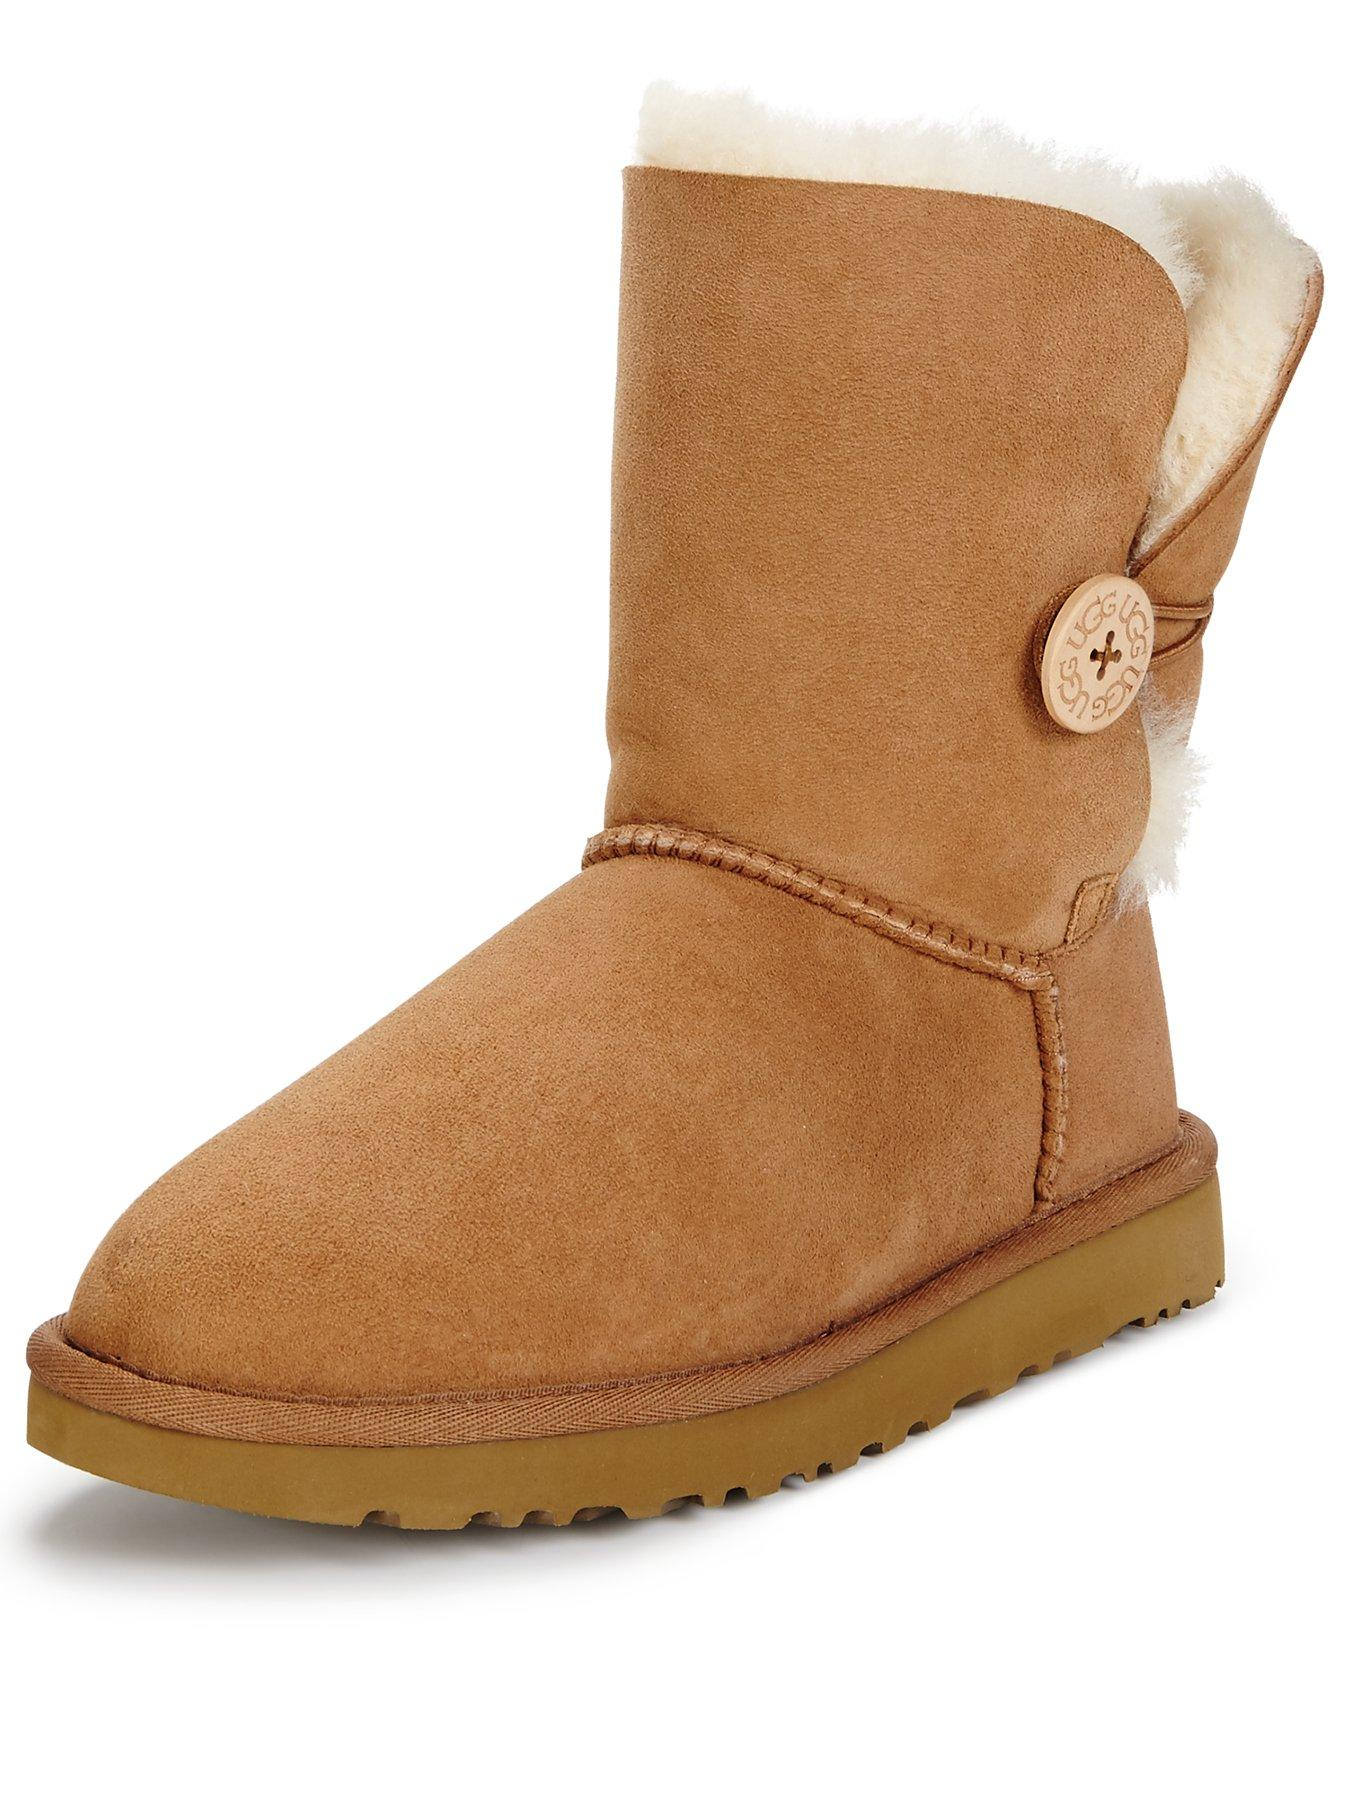 UGG boots are on many women's wishlists when it comes to Christmas, and they really pull together a Thanksgiving look when you're going for casual and cute while staying warm. Thrill a woman in your life with a furry, fluffy pair of these legendary boots or shoes that make her look forward to being chilly.